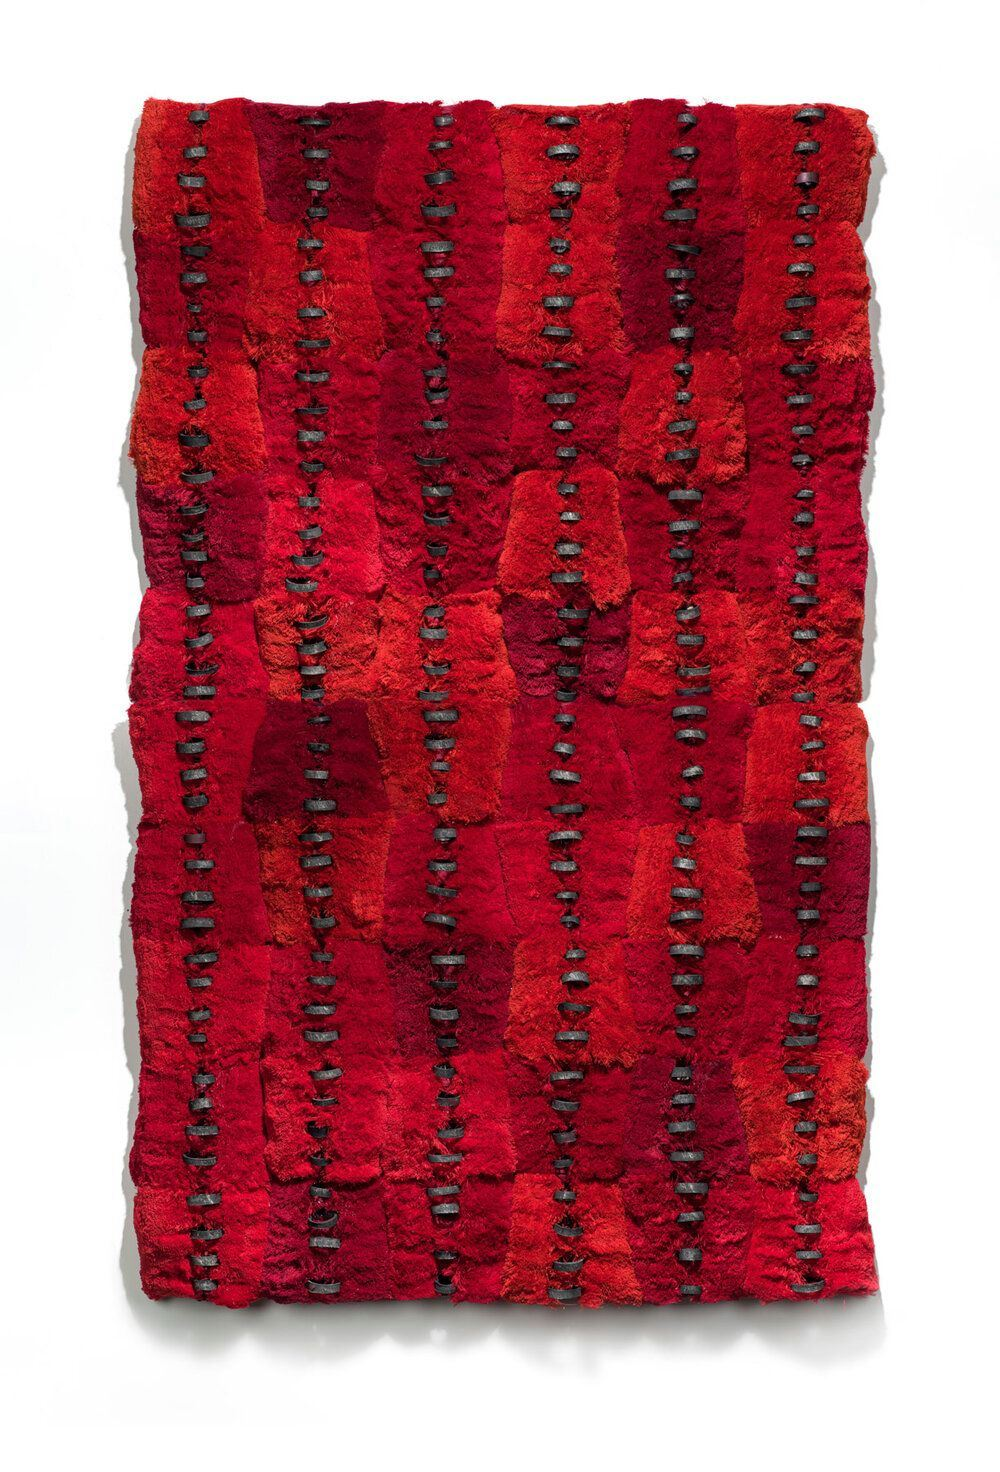 "Proximate Parcels, Brenda Mallory, 70 x 34 x 4 inches, deconstructed thread spools and cores. A work composed of interlocking trapezoid shapes fitted together to form a vertical rectangle with six vertical rows of dark charcoal colored ""stitching"" running lengthwise. The trapezoid shapes are made up of red fibers, appear fluffy and vary in shades of deep red to tomato red. The edges of the work are uneven and undulate slightly with the shape of the trapezoids. The stitches embellish the trapezoid shapes but do not actually join them together."